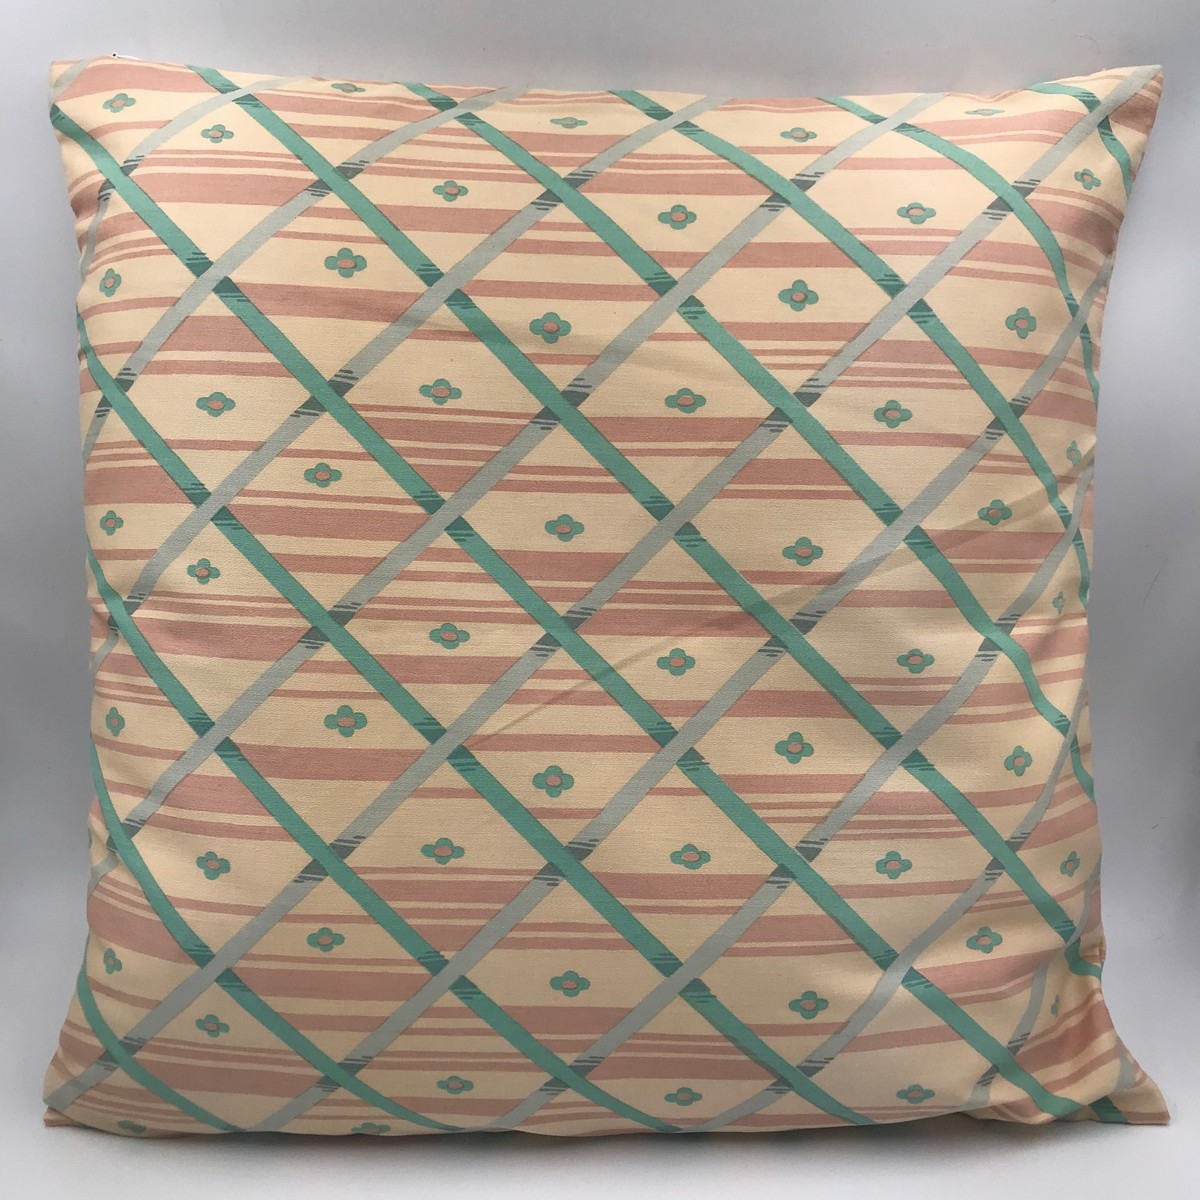 Buy Handmade square vintage retro style pillow, Сotton style 60s pillow, Сraftsman's cushion cover, Hand made decorative pillow